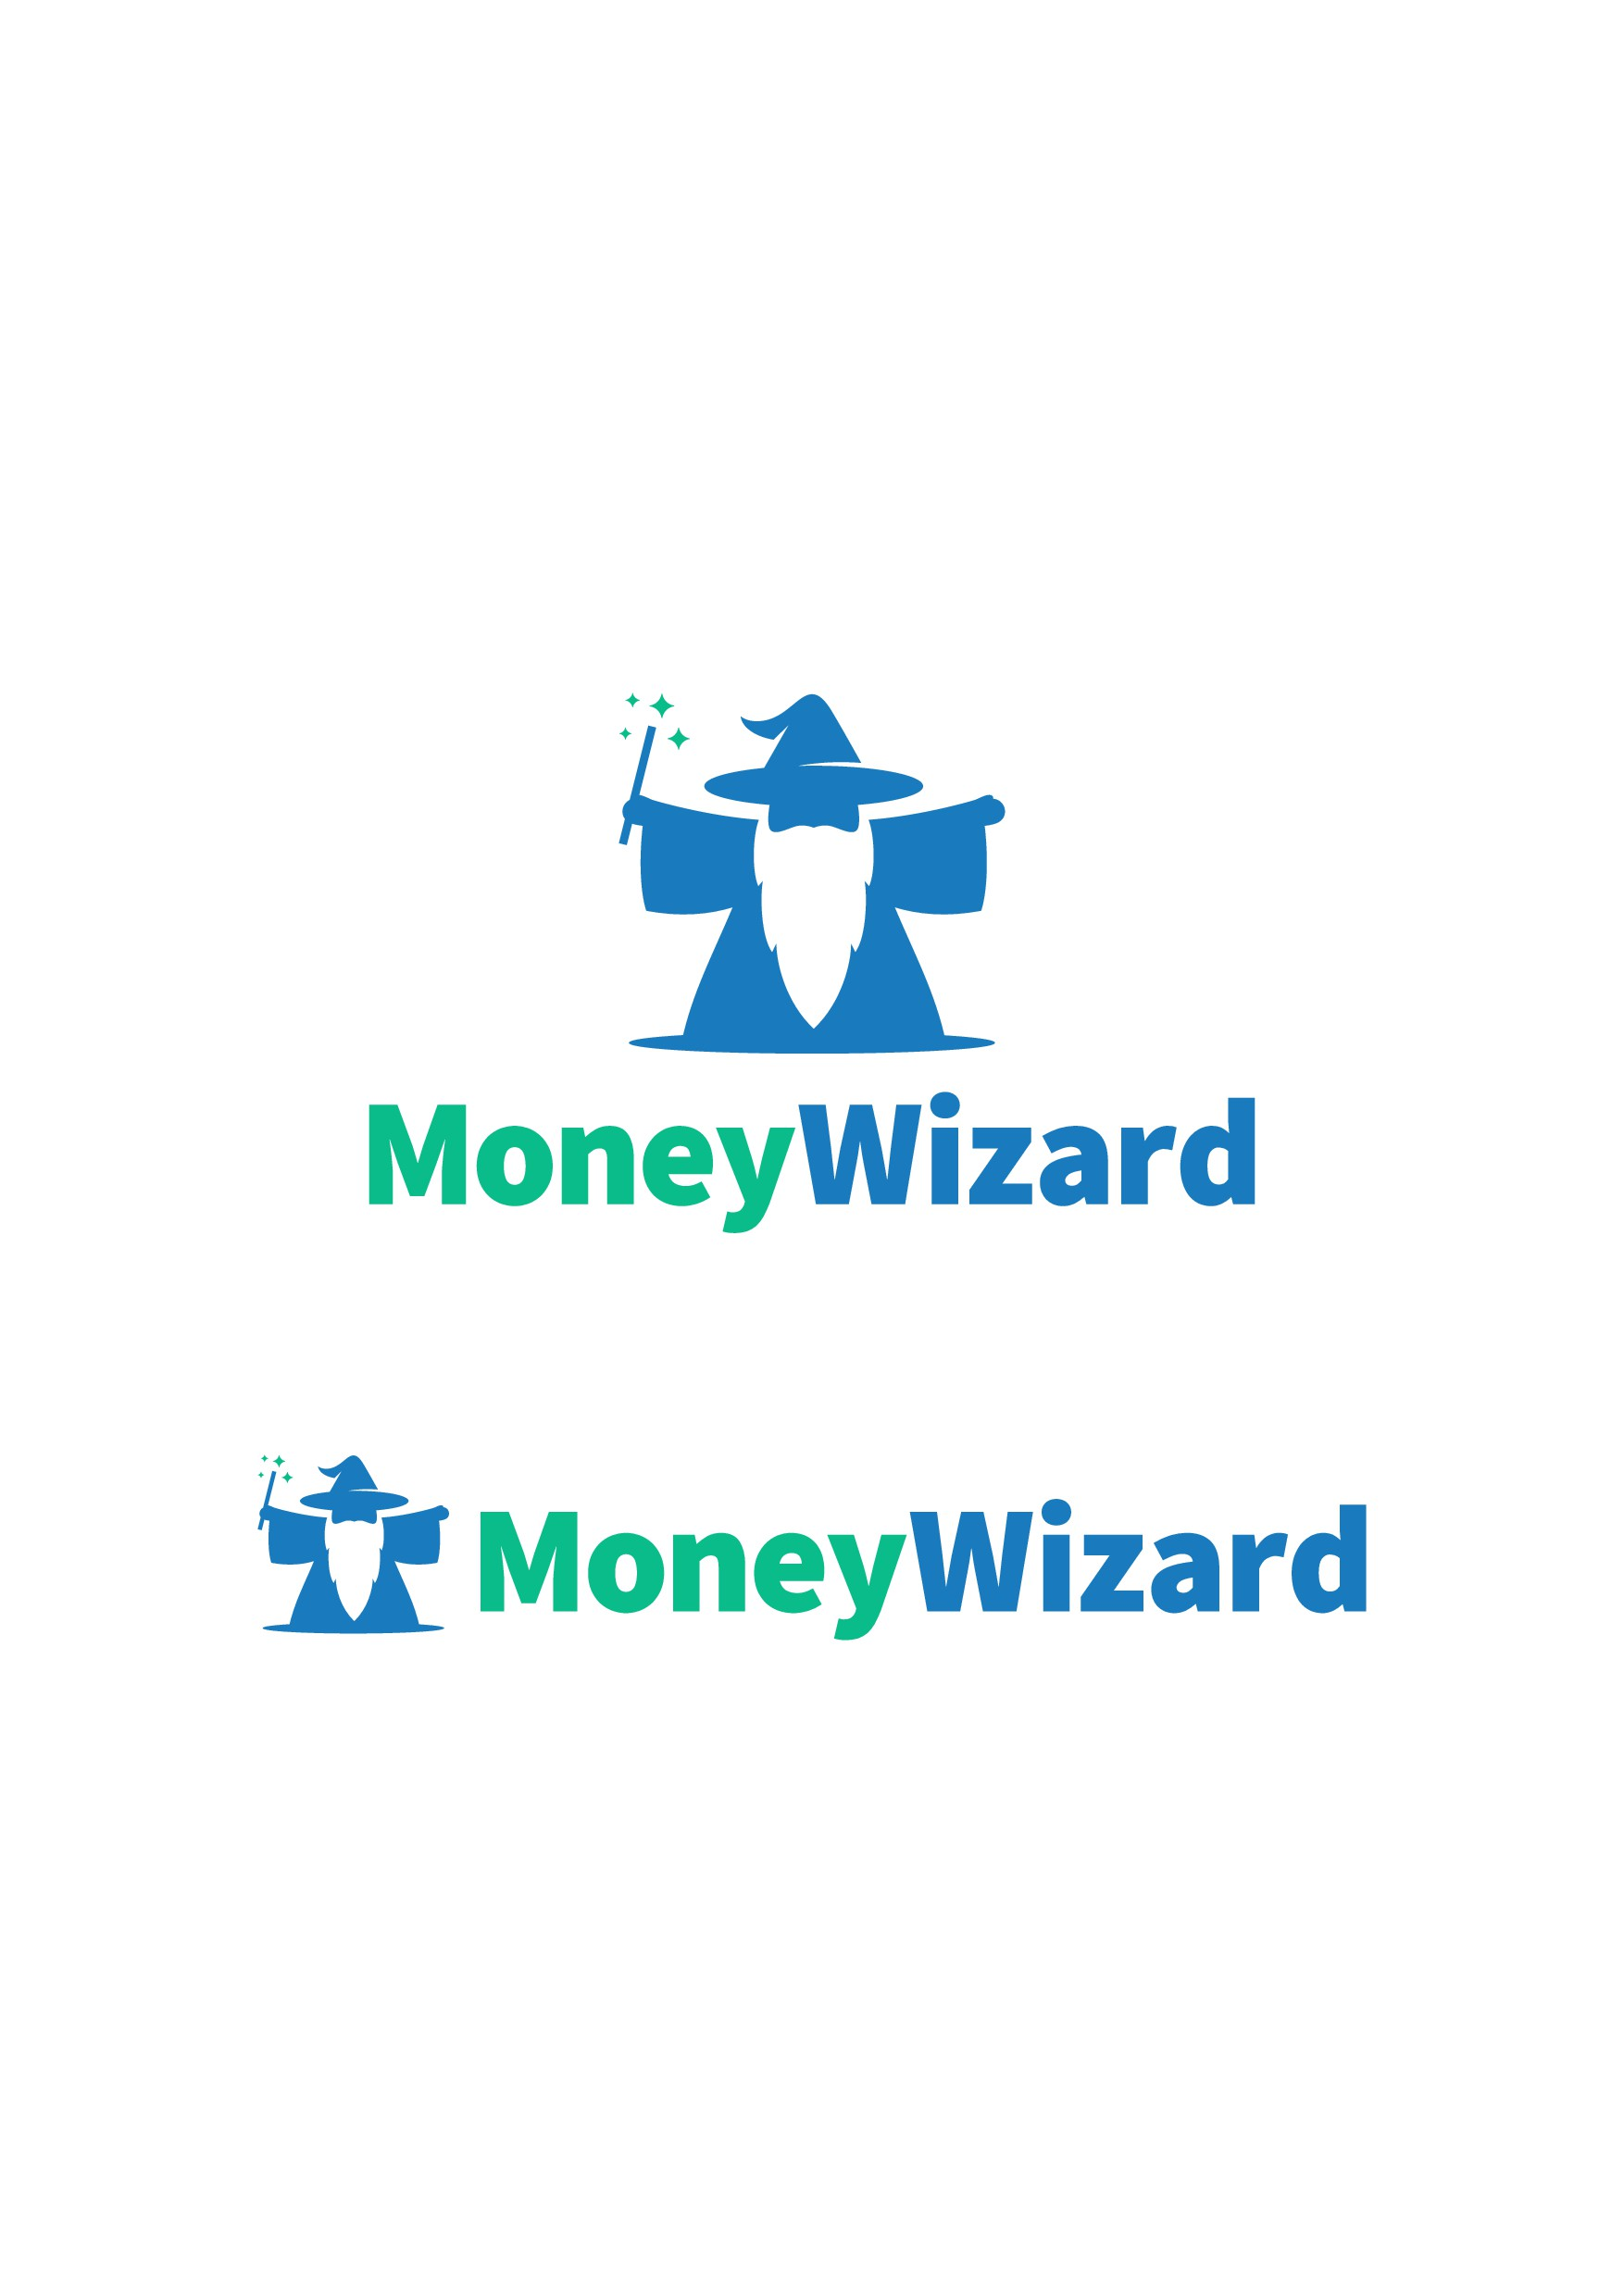 MoneyWizard: a personal finance website catering to value-focused middle aged folks